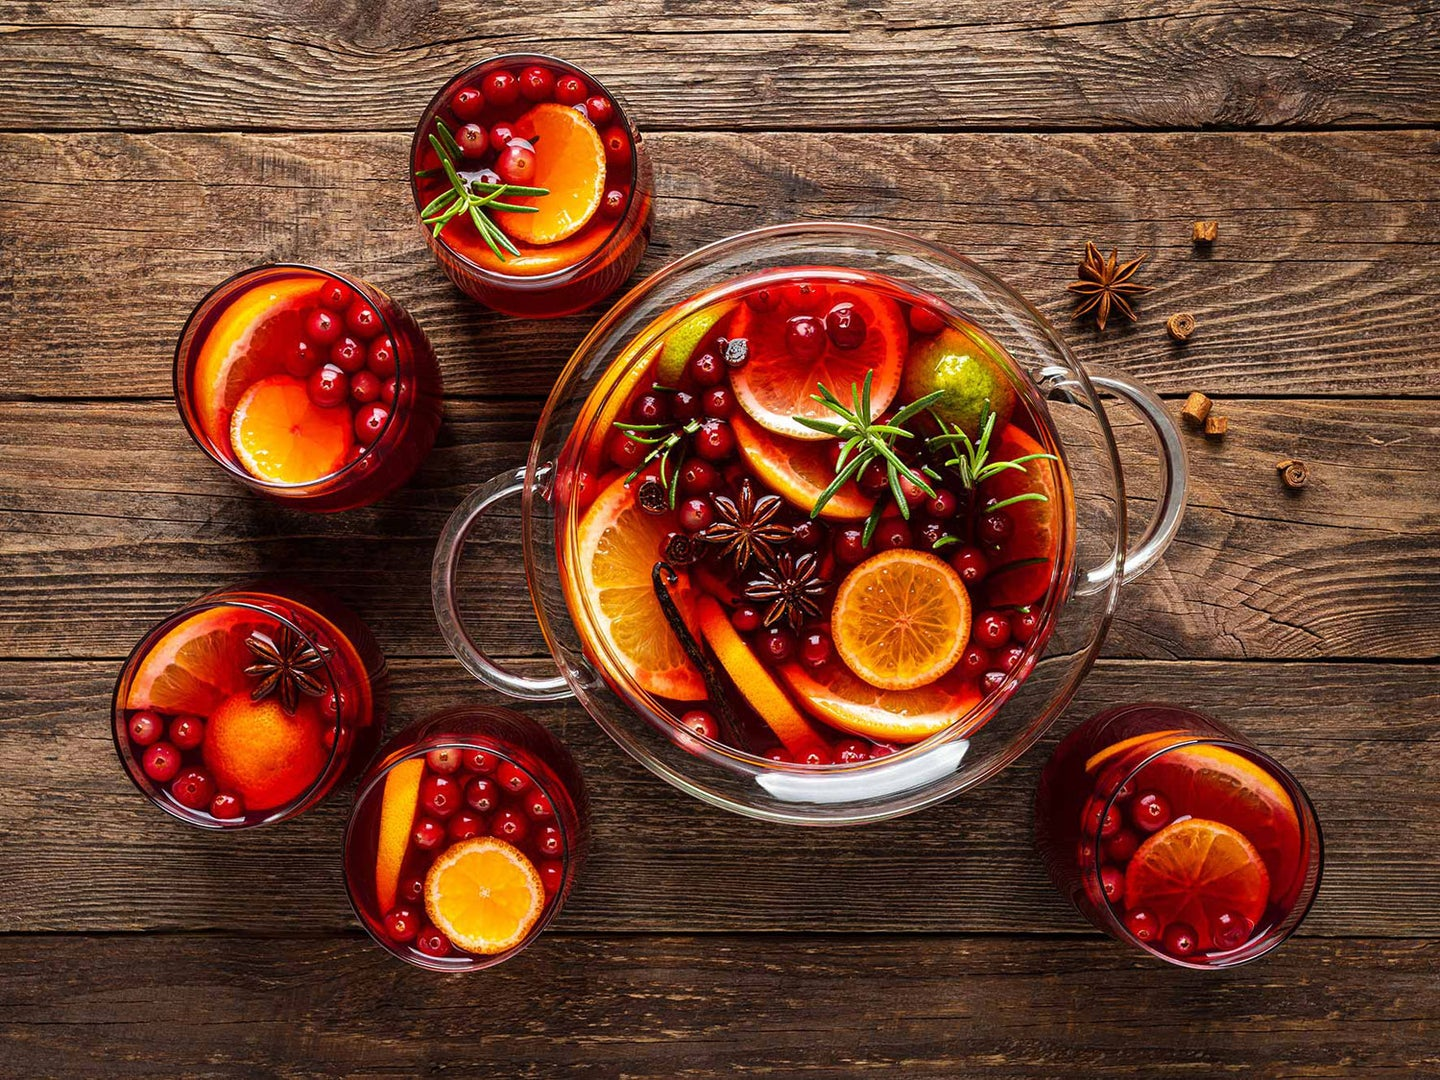 Punch bowl full of orang slices, cranberries, and punch.